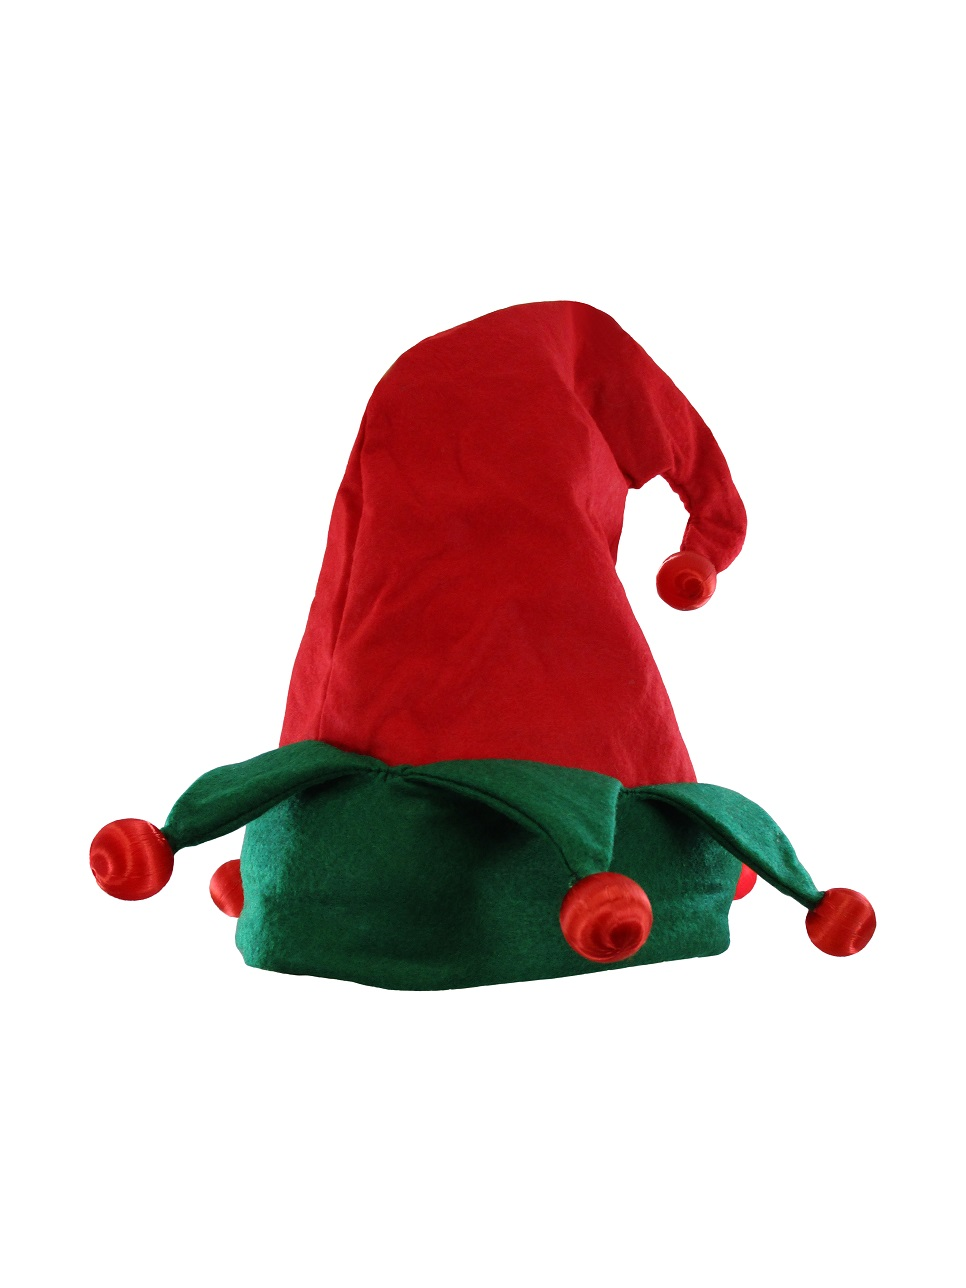 thumbnail 8 - Nicky-Bigs-Novelties-Light-Up-Elf-Hat-Costume-Accessory-Red-Green-One-Size